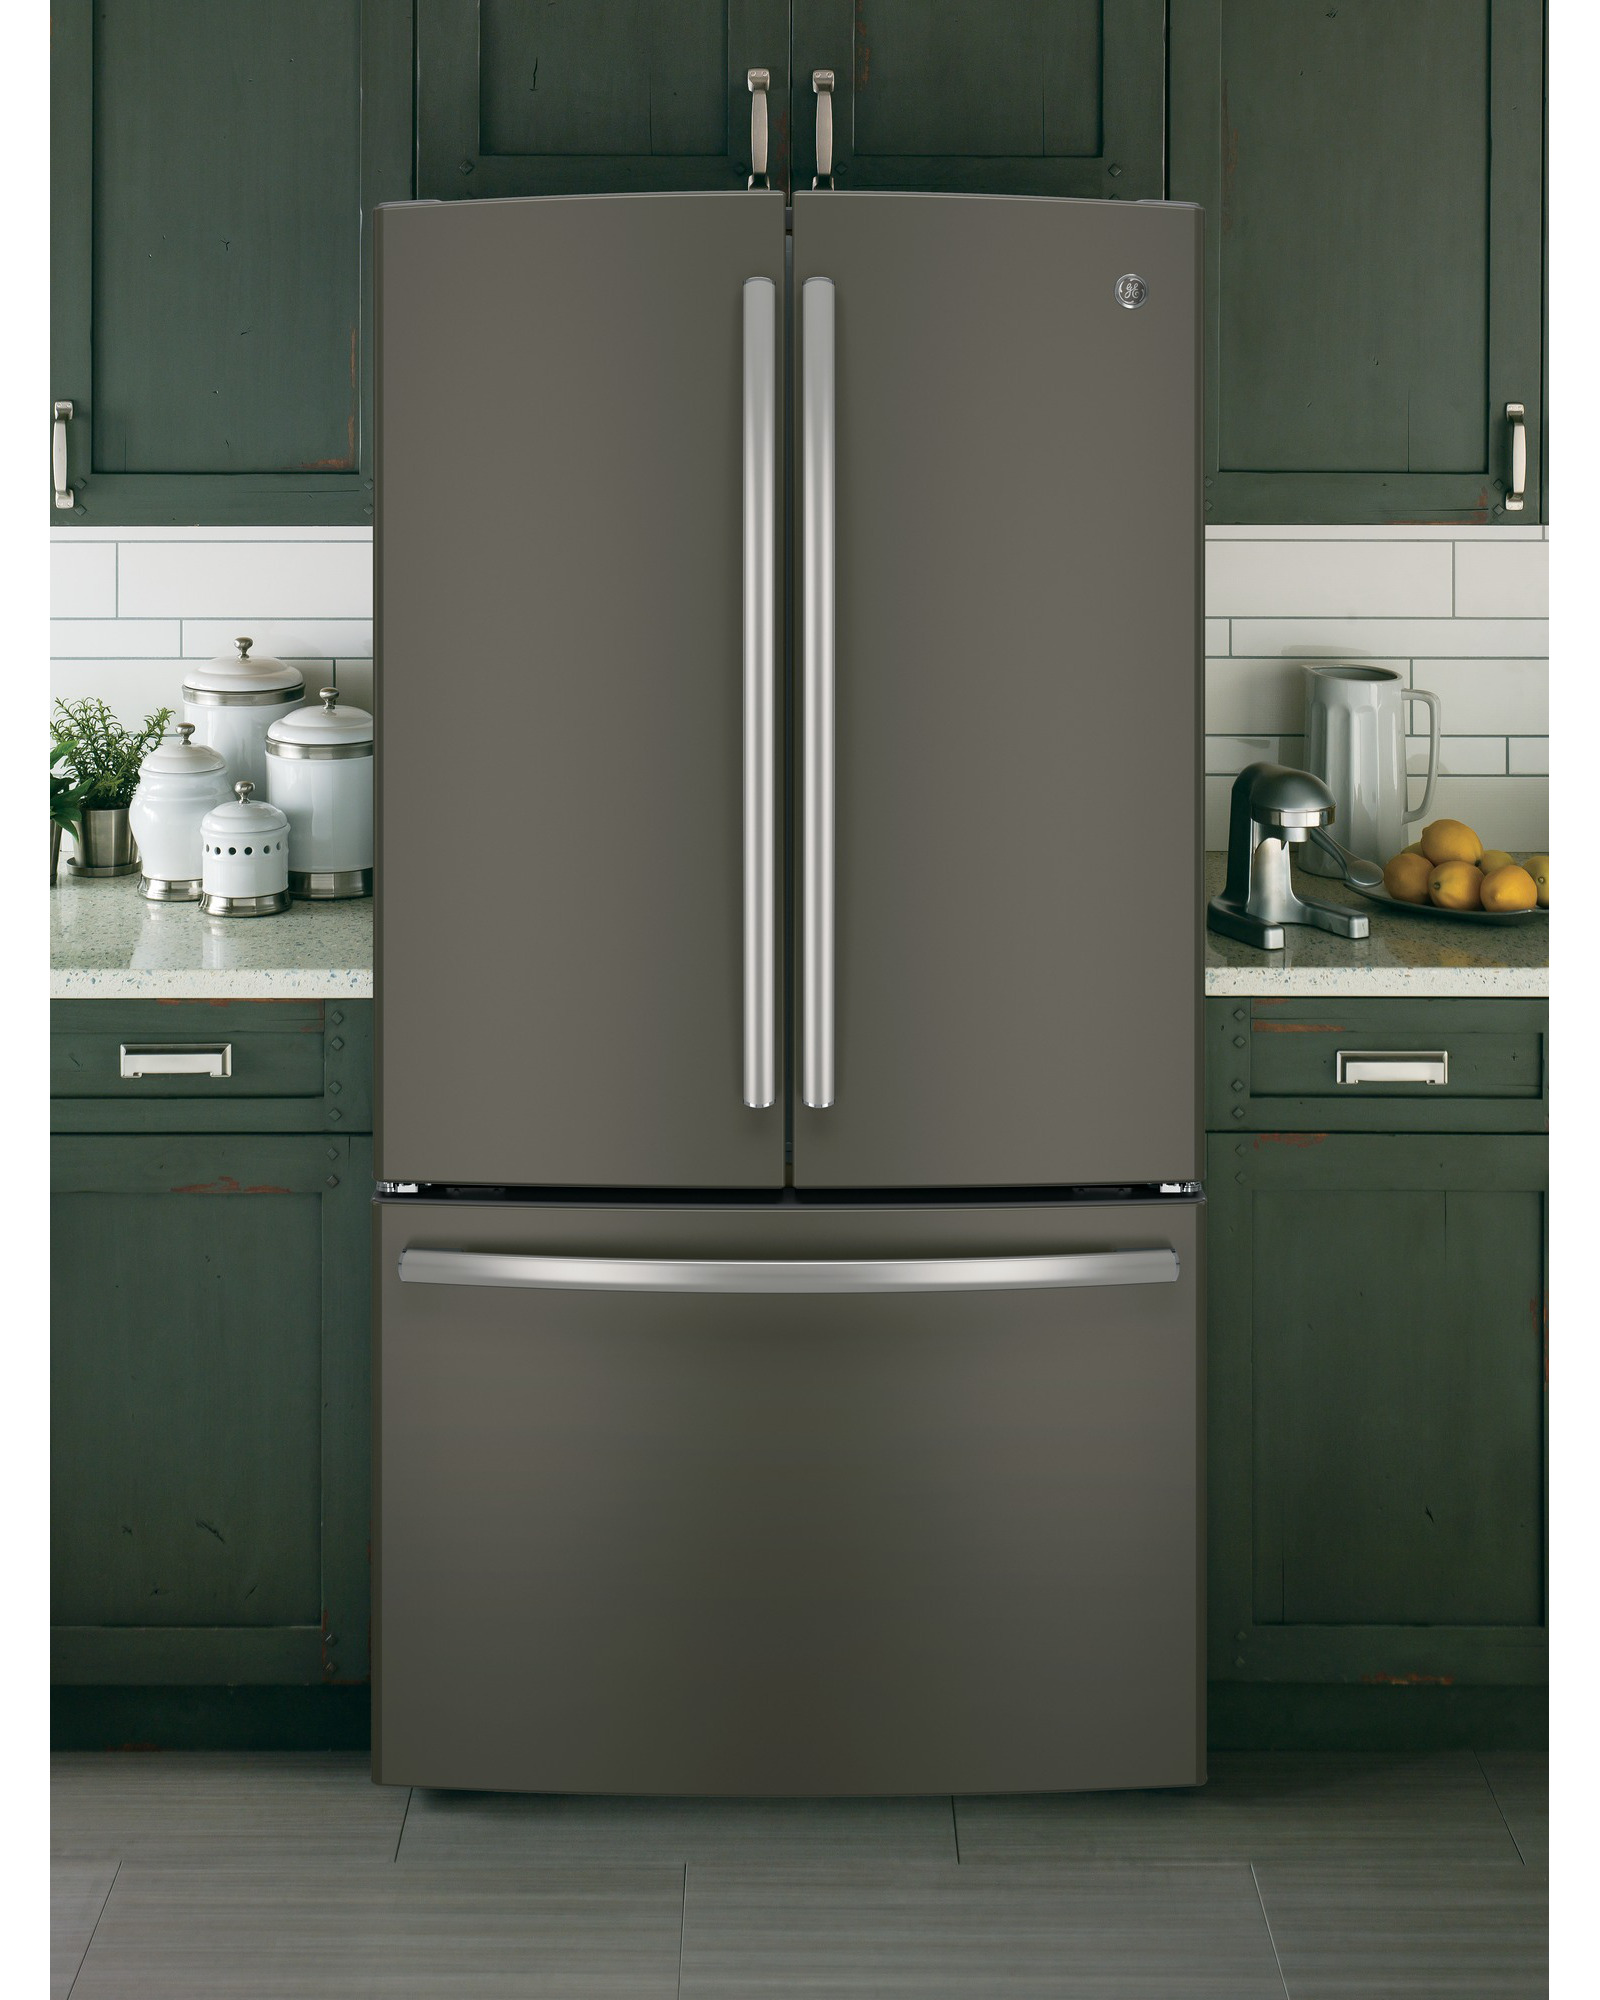 GE Appliances GNE29GMHES 28.5 cu. ft. French-Door Refrigerator - Slate